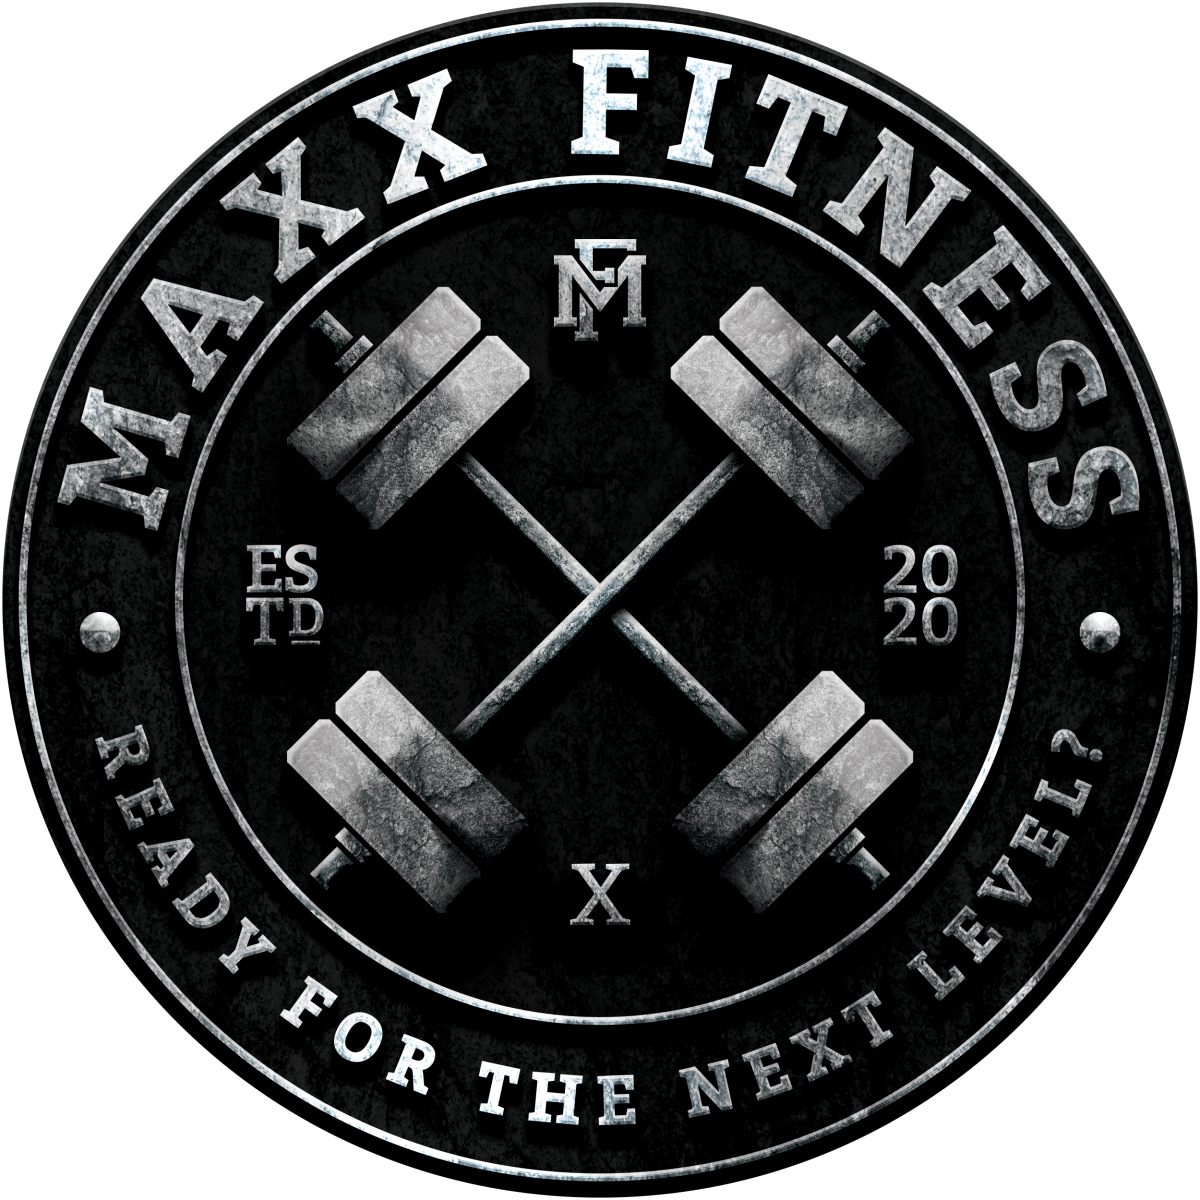 Branding for a HardCore Gym